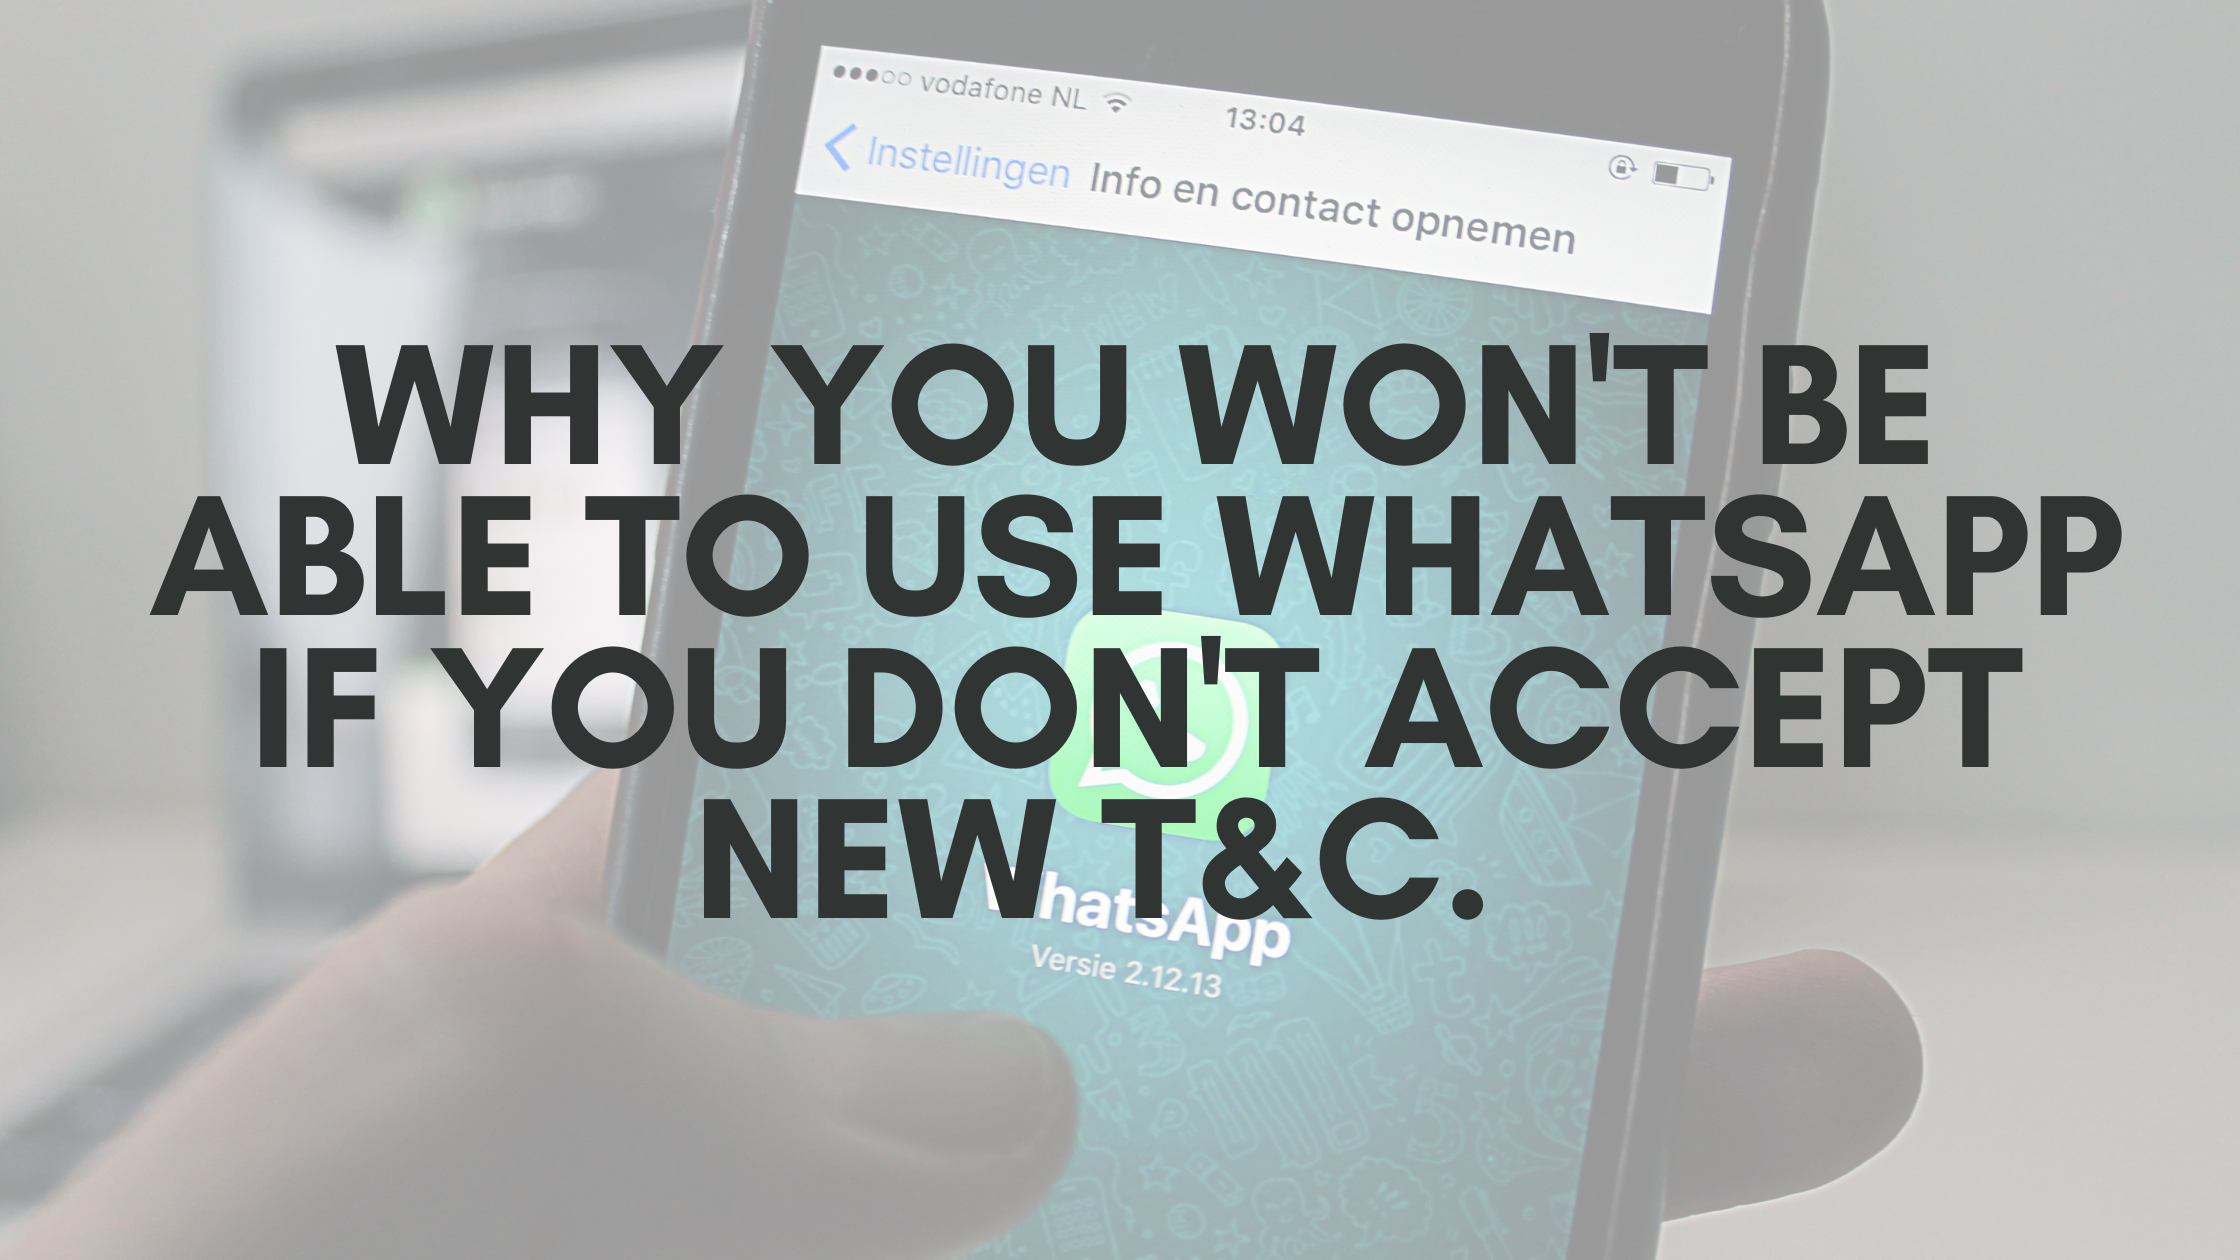 Why you won't be able to use WhatsApp if you don't accept new t&c.